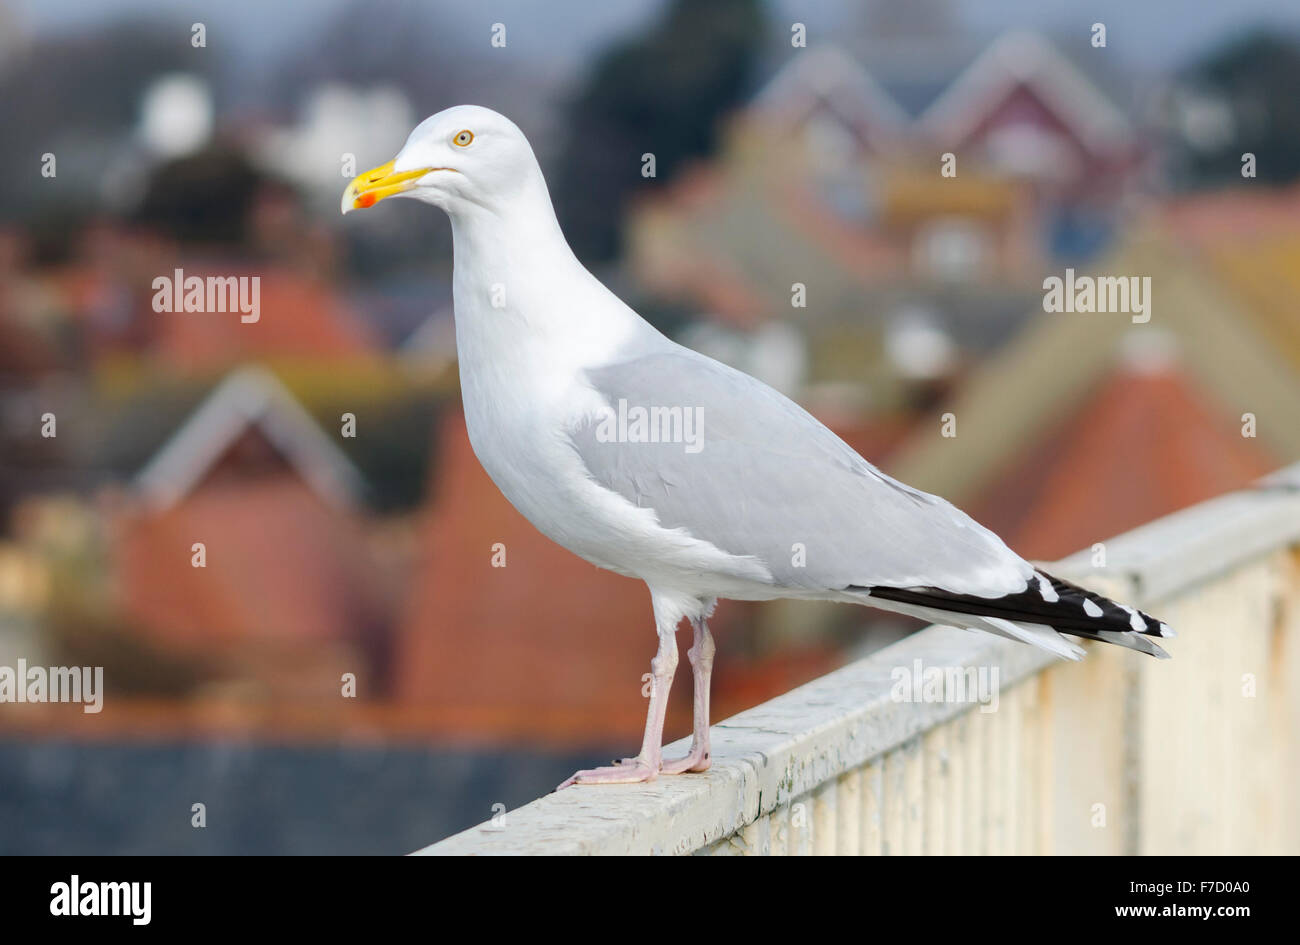 Herring Gull (Larus Argentatus) in Spring standing above house rooftops overlooking a town in the UK. Seagull urban - Stock Image